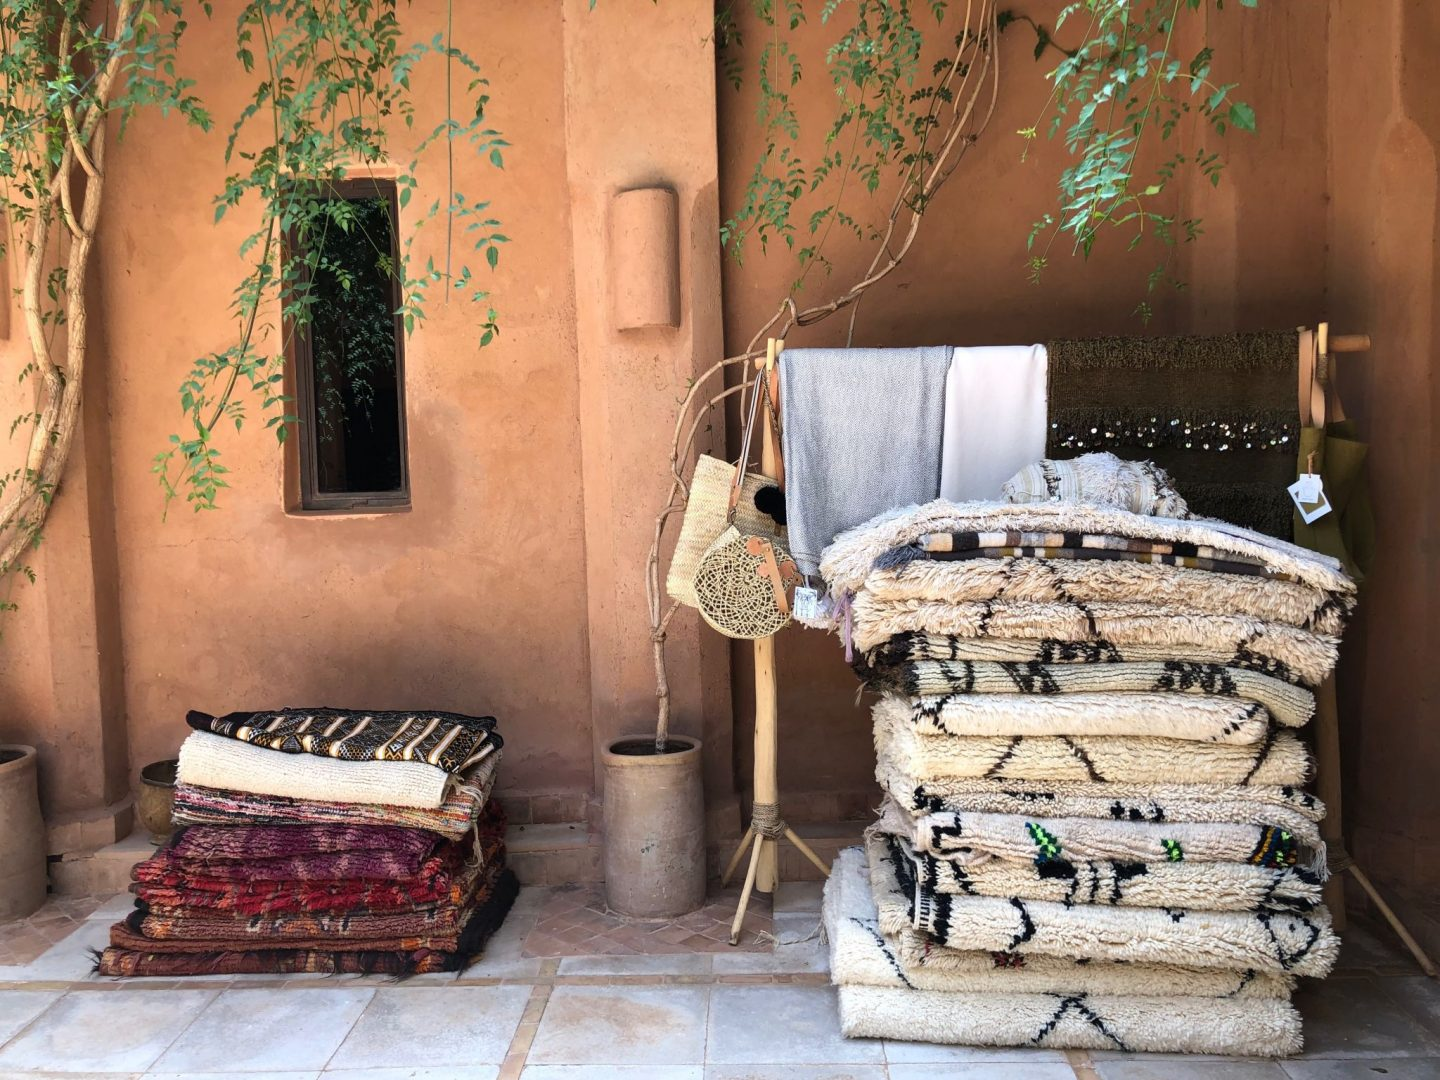 Rugs and carpets sold on the Kasbah Bab Ourika shop website www.minttealovers.com